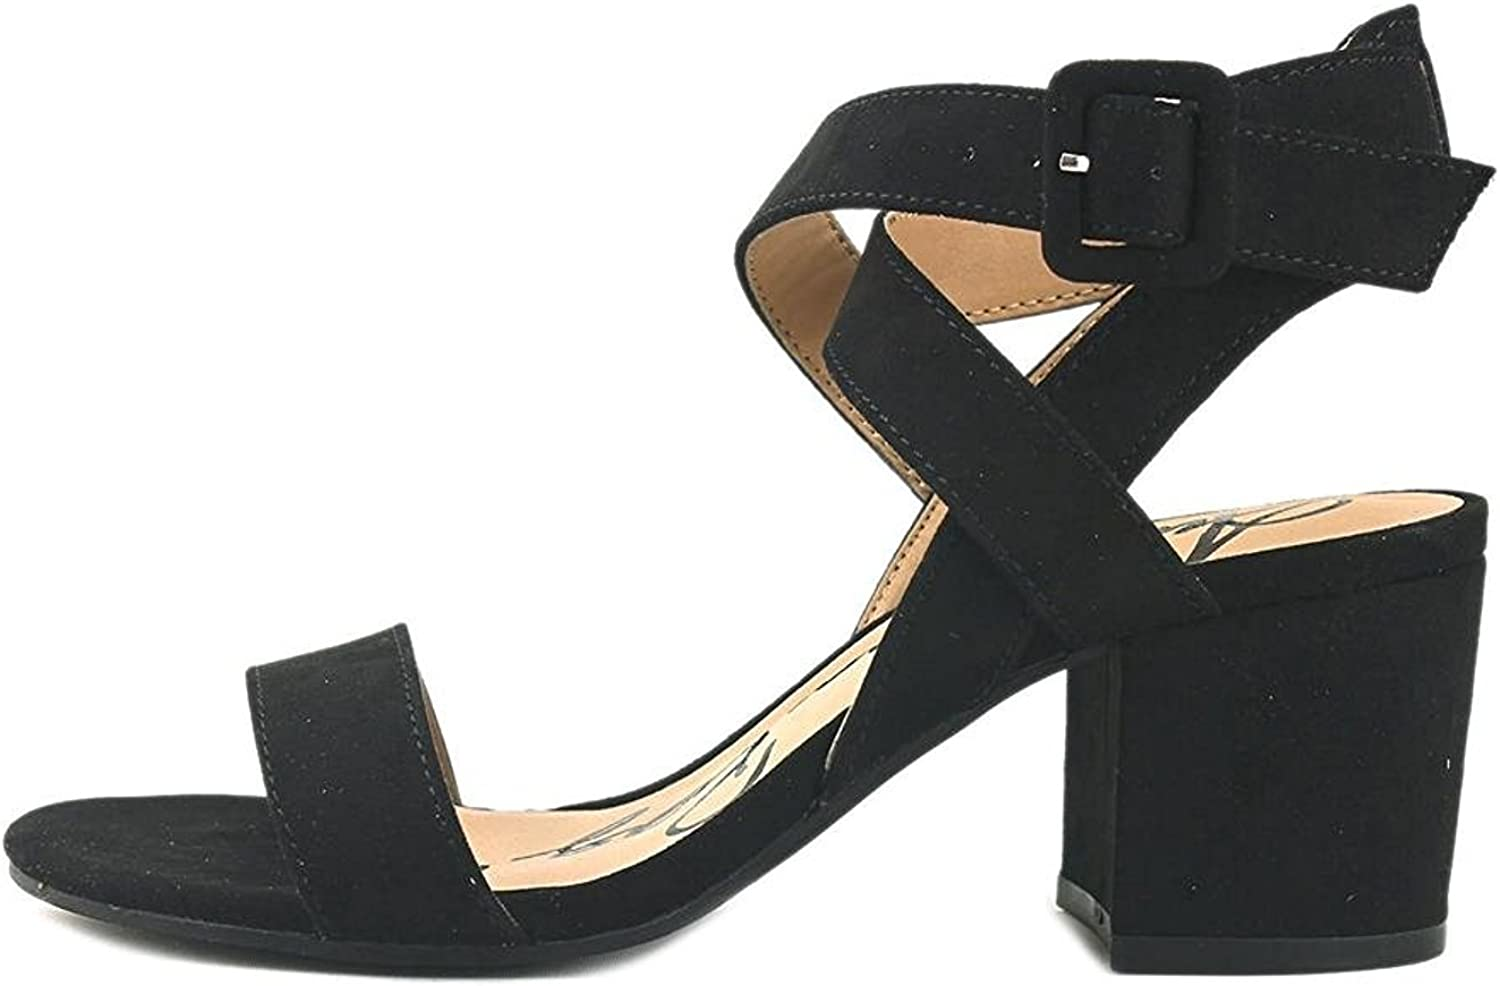 American Rag Womens Caelie Open Toe Casual Slingback Sandals, Black, Size 9.5